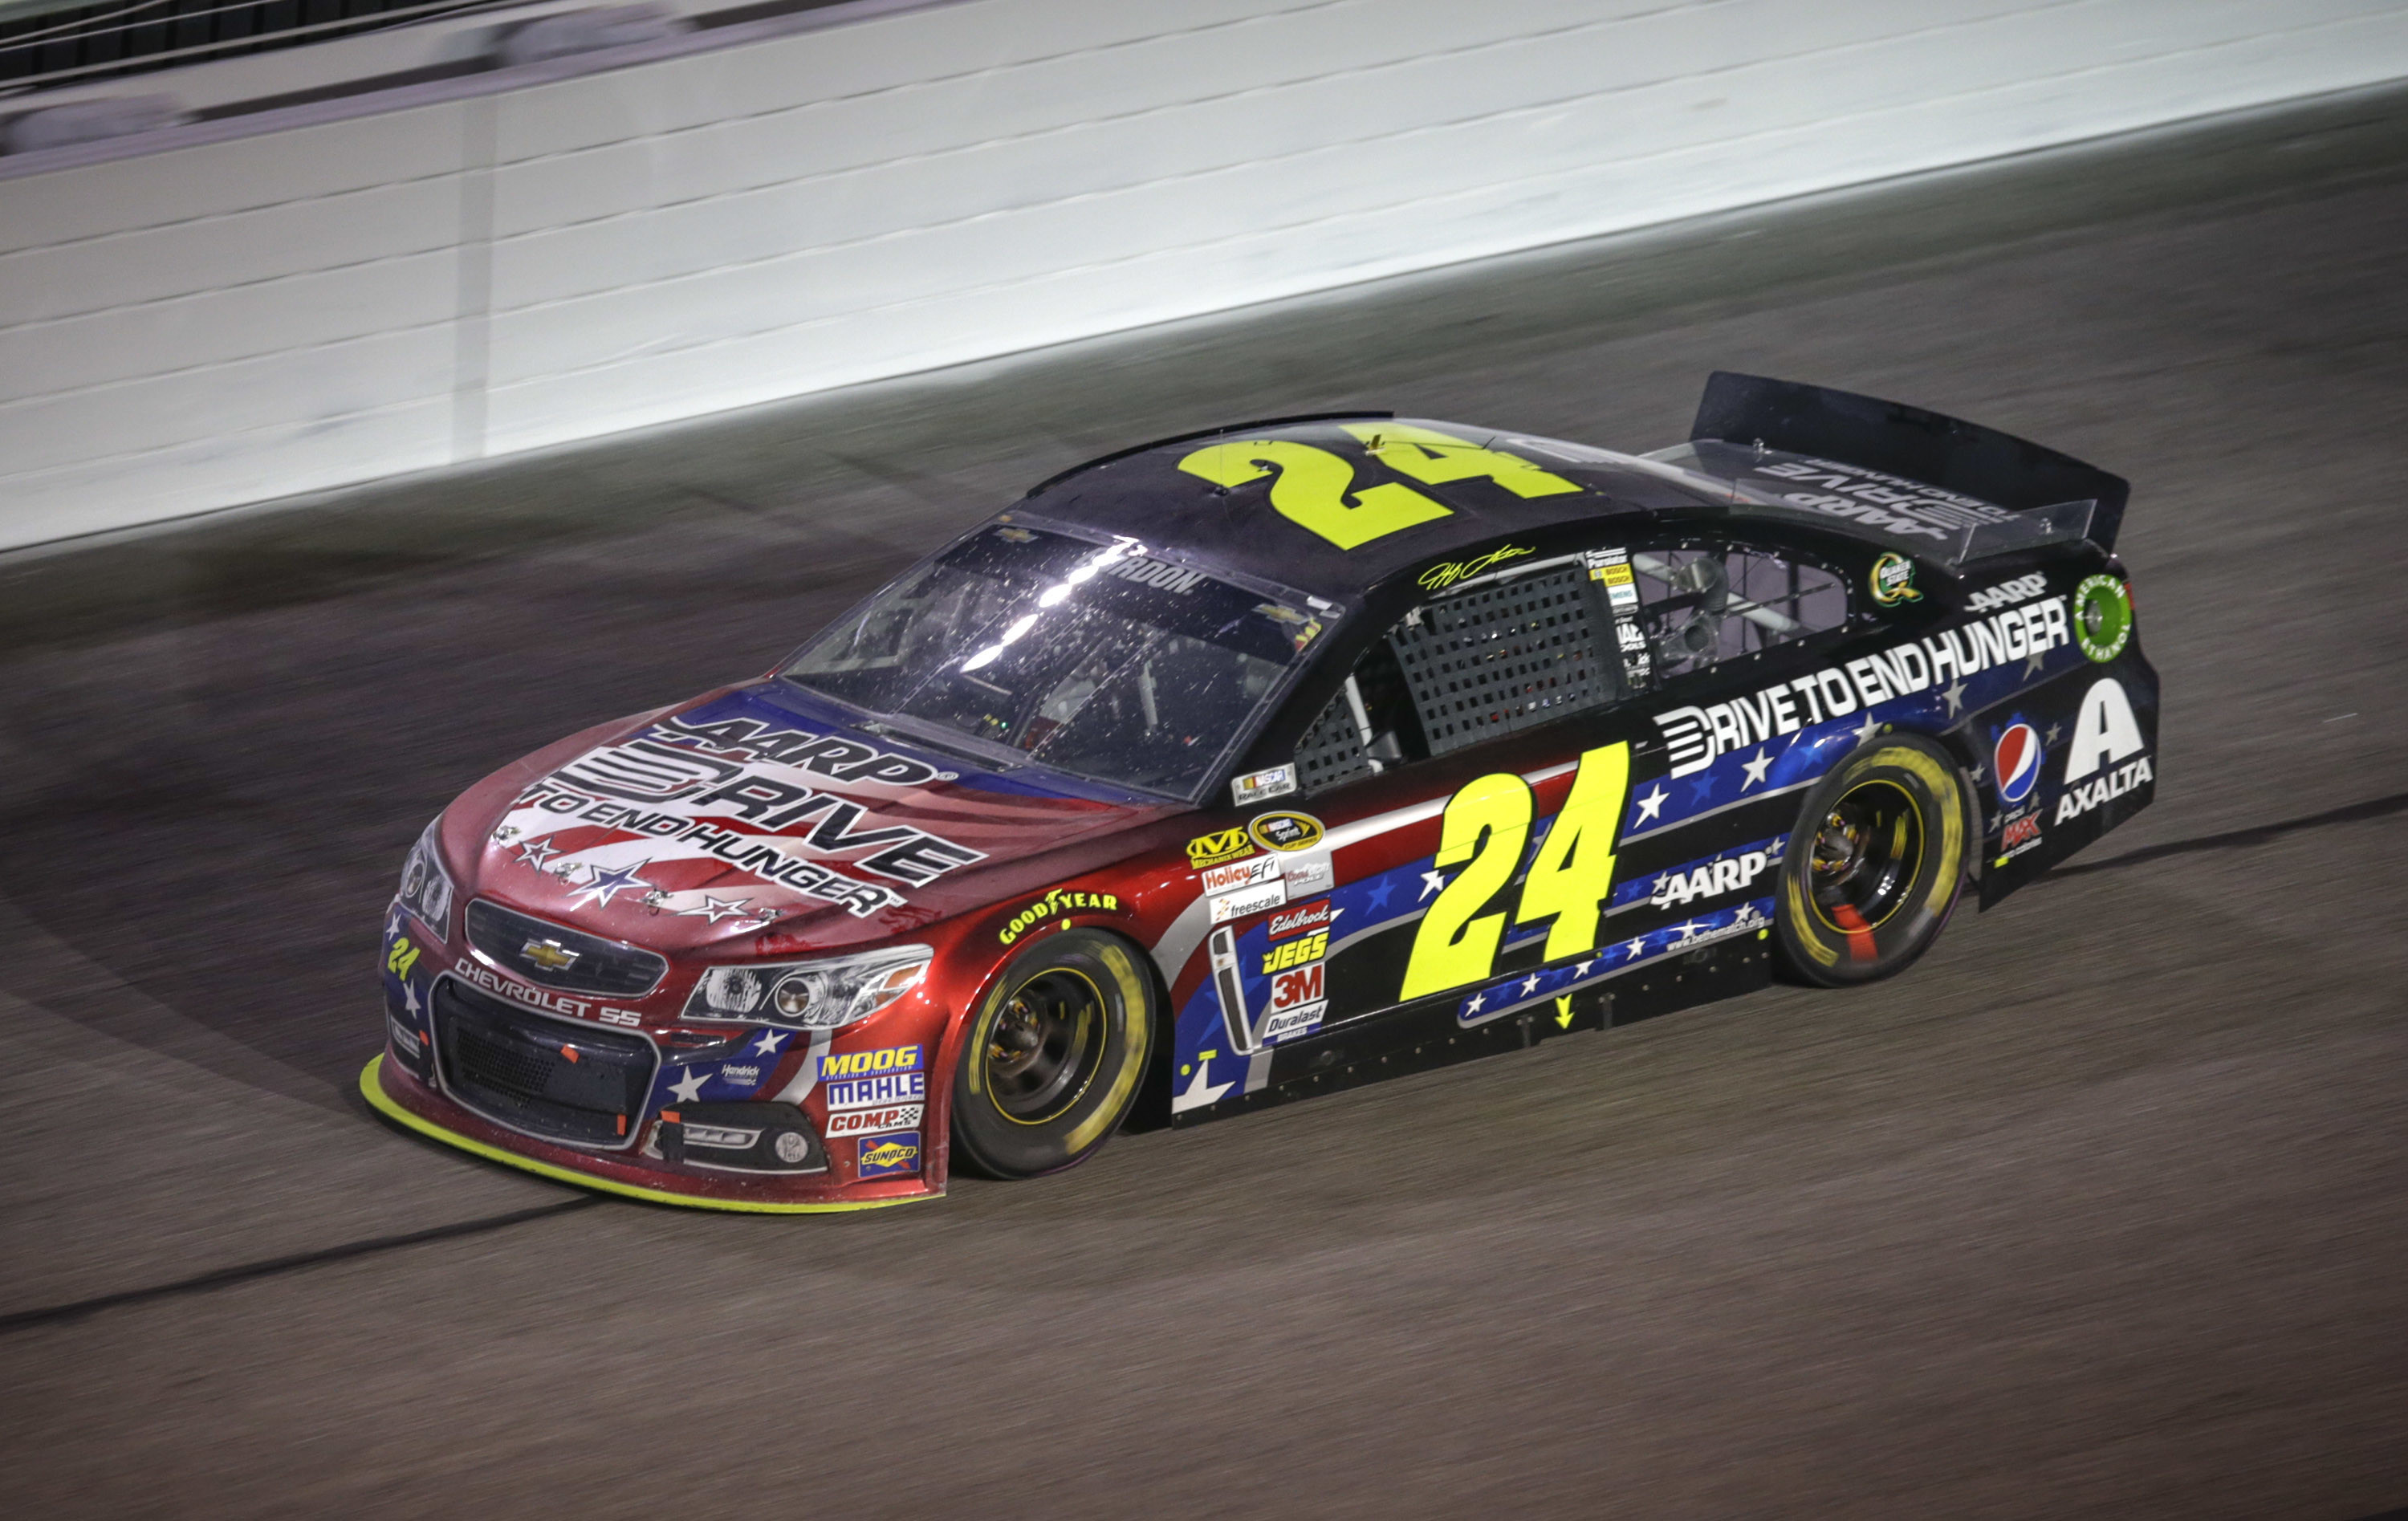 1920x1080 Jeff Gordon Desktop Wallpaper For Ios WTG3061576